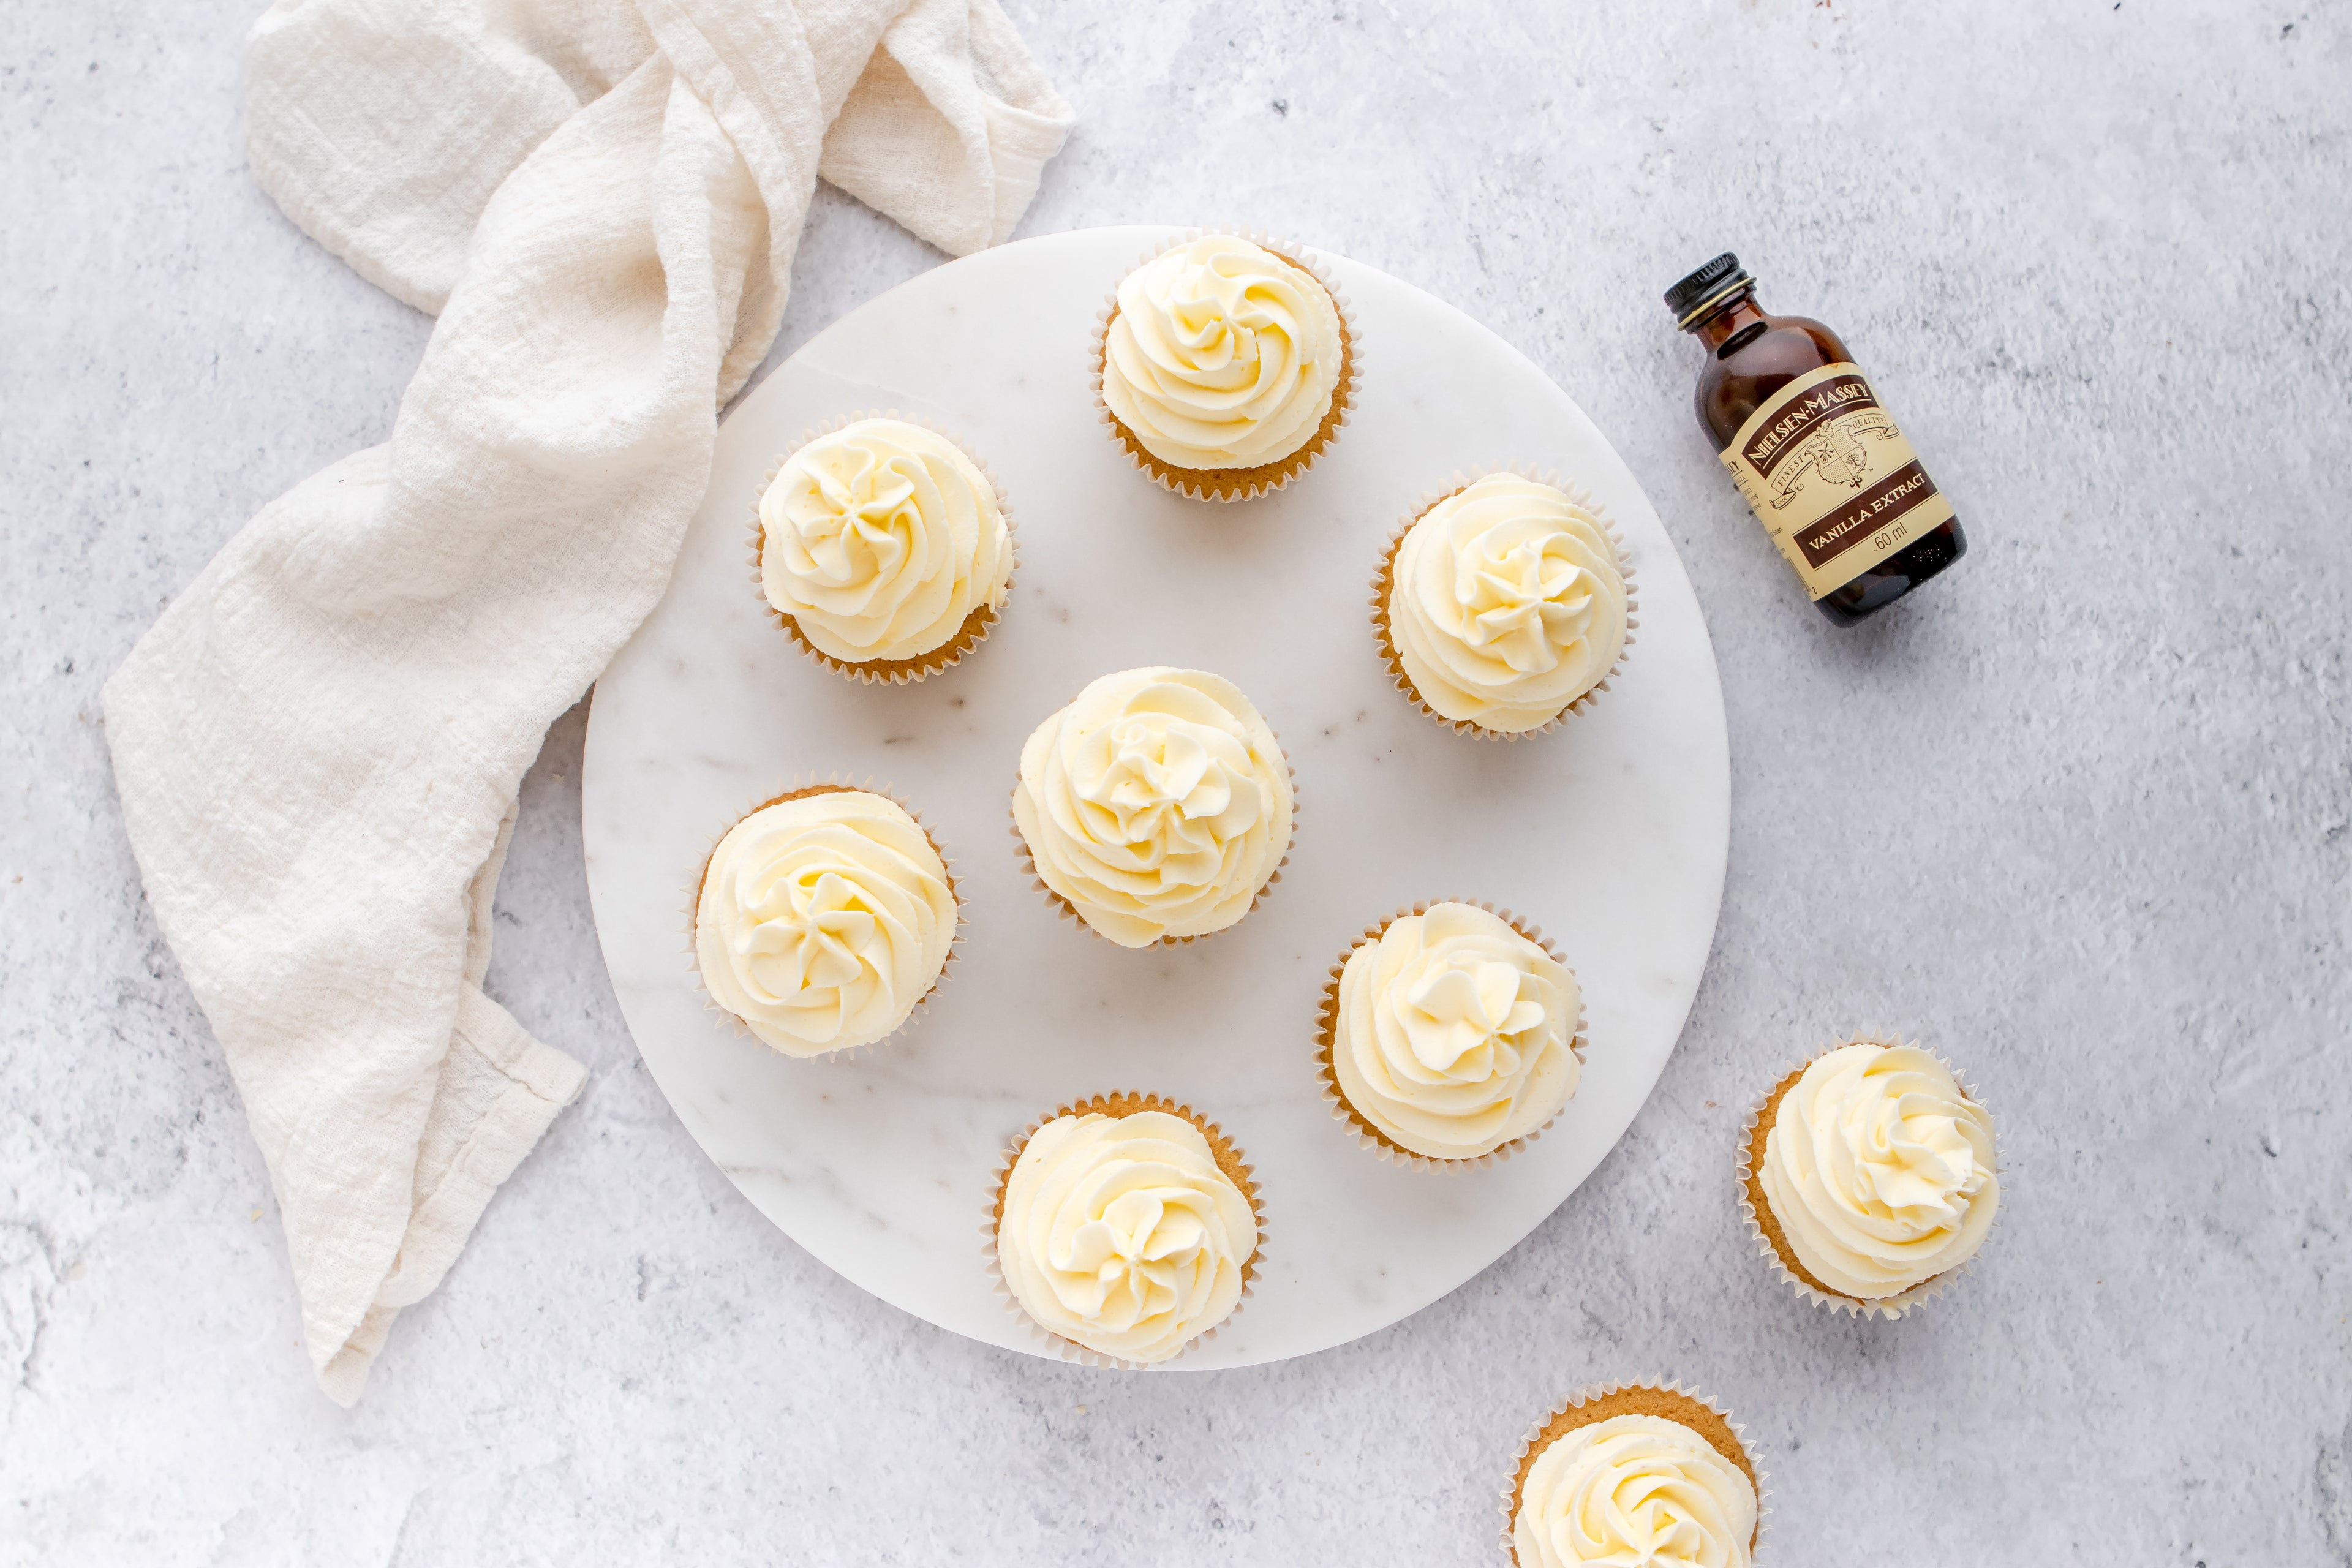 Gluten Free Cupcakes from above view with a bottle of Neilsen-Massey vanilla extract lay next to the serving board